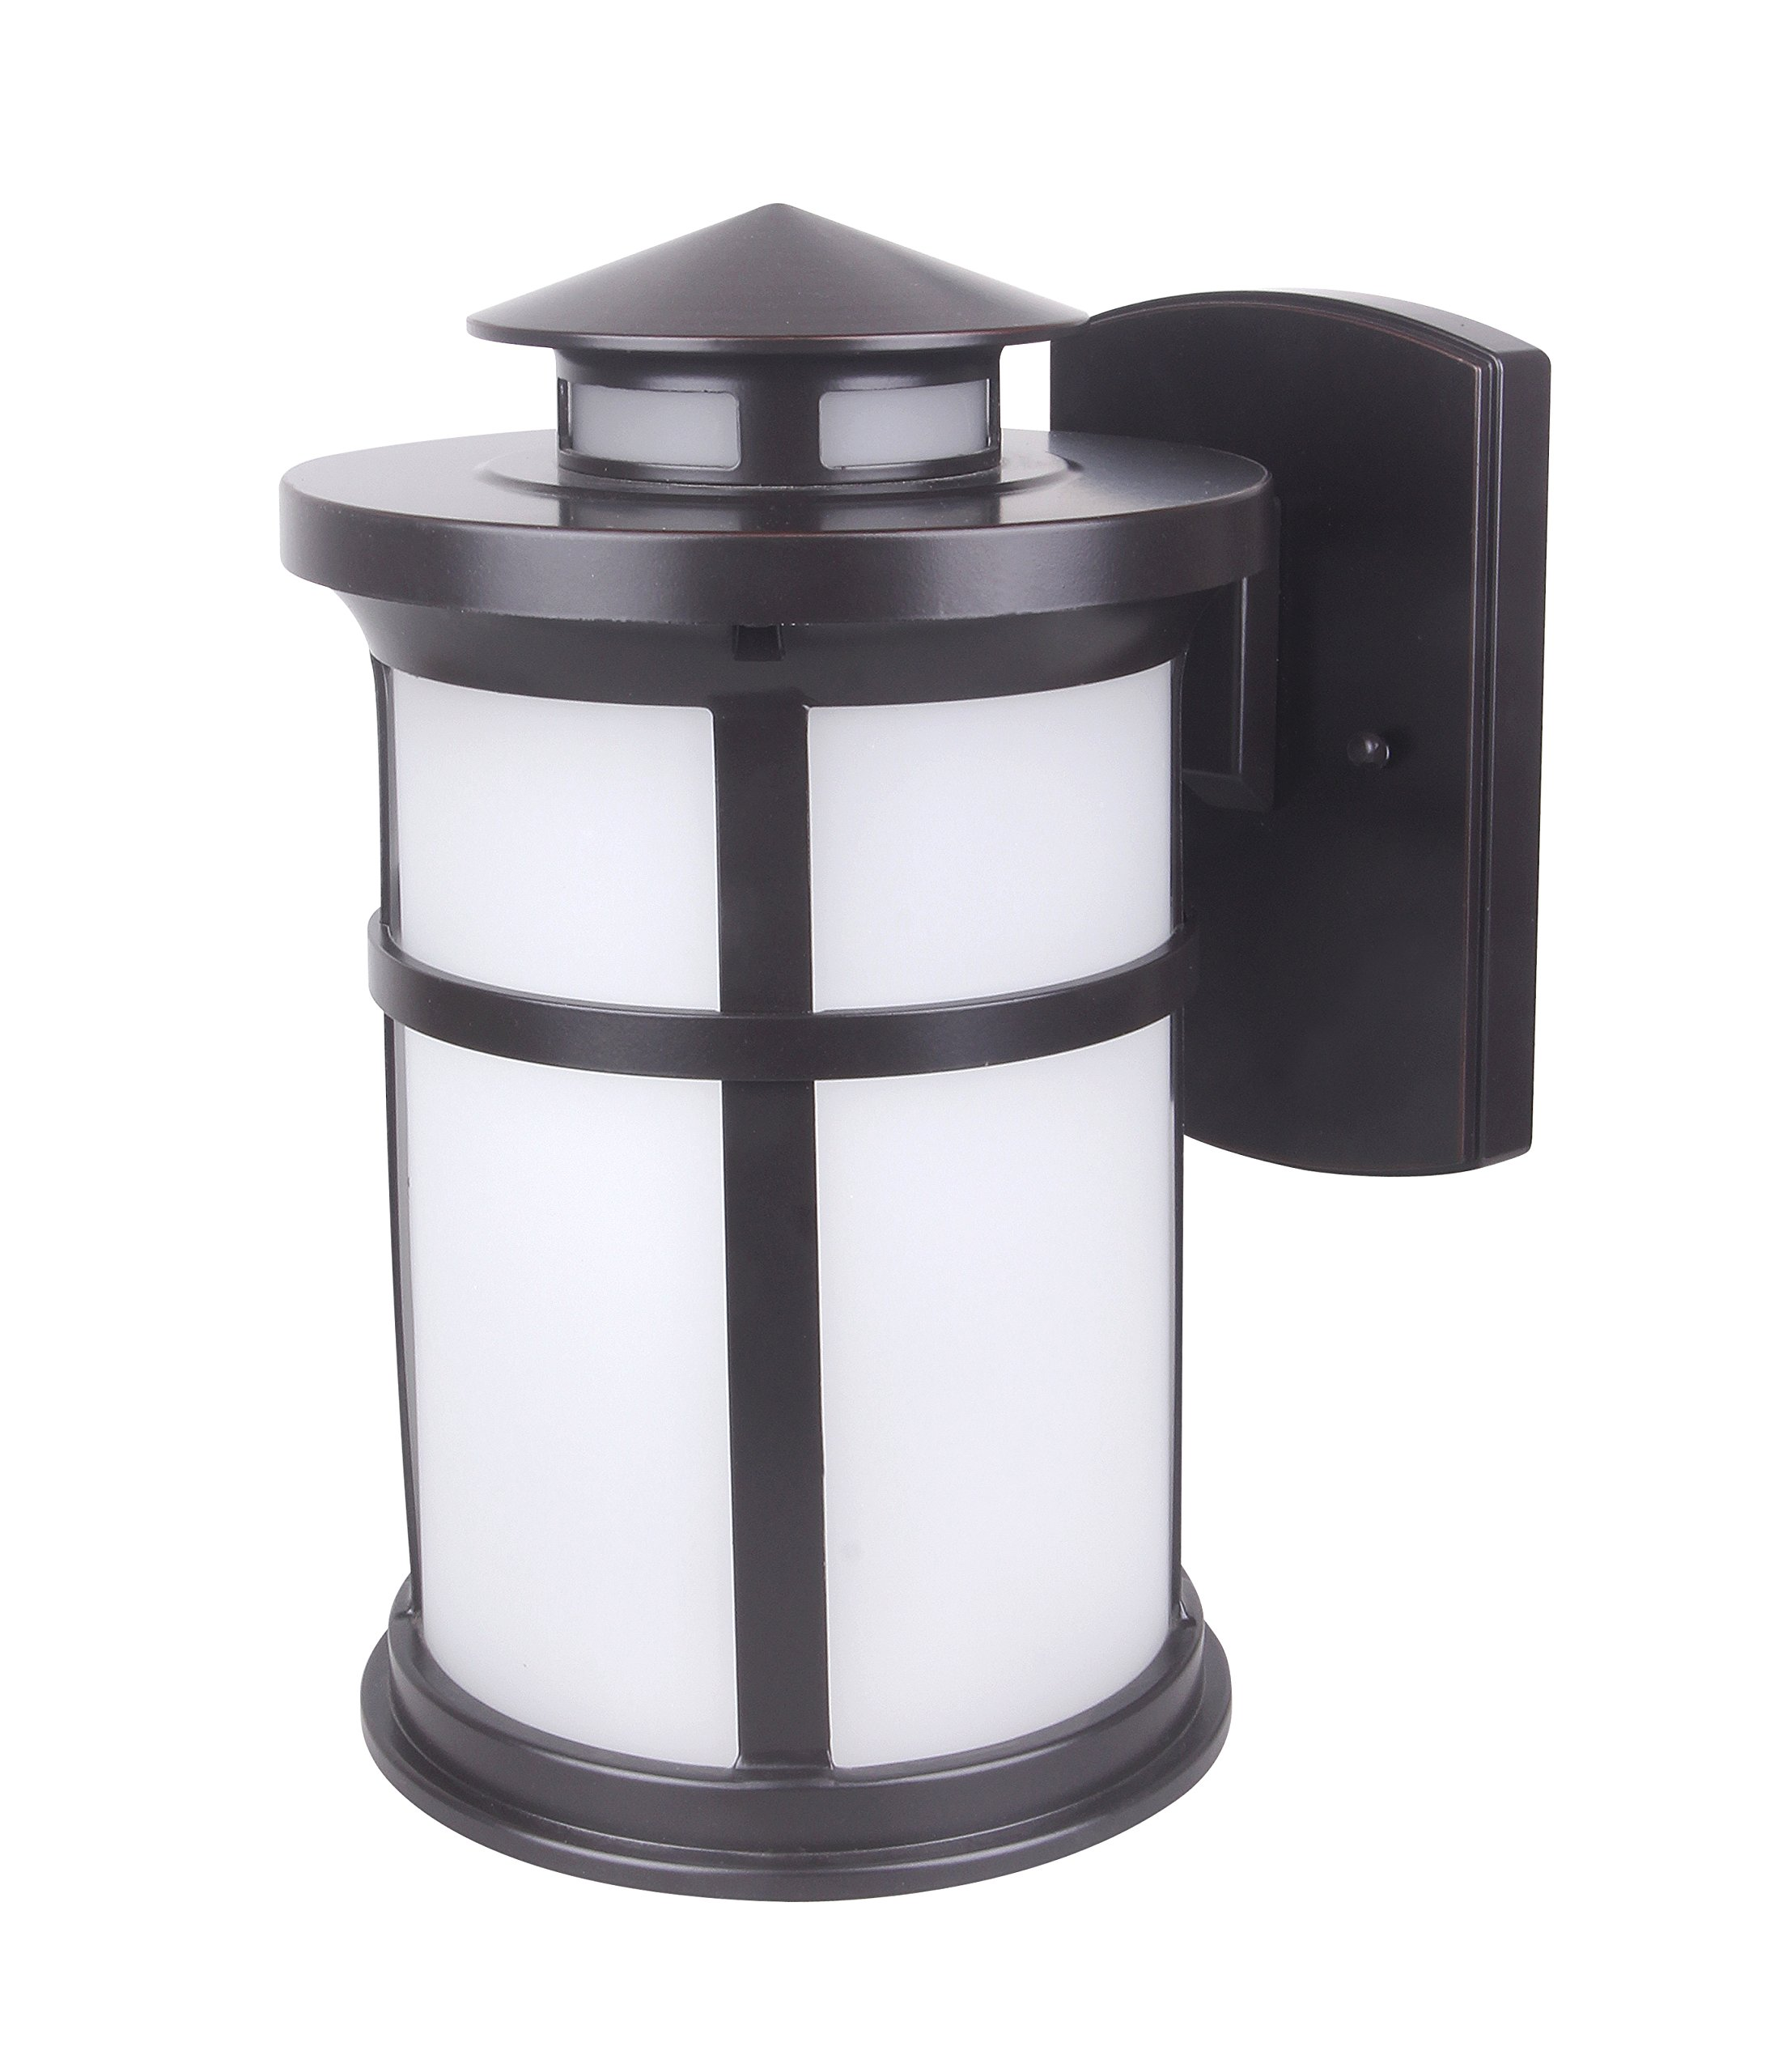 CORAMDEO Outdoor LED Wall Lantern, Wall Sconce as Porch Light Fixture, 11.5W, 1050 Lumen, Water-Proof, Aluminum Housing Plus Glass, ETL and Energy Star Rated